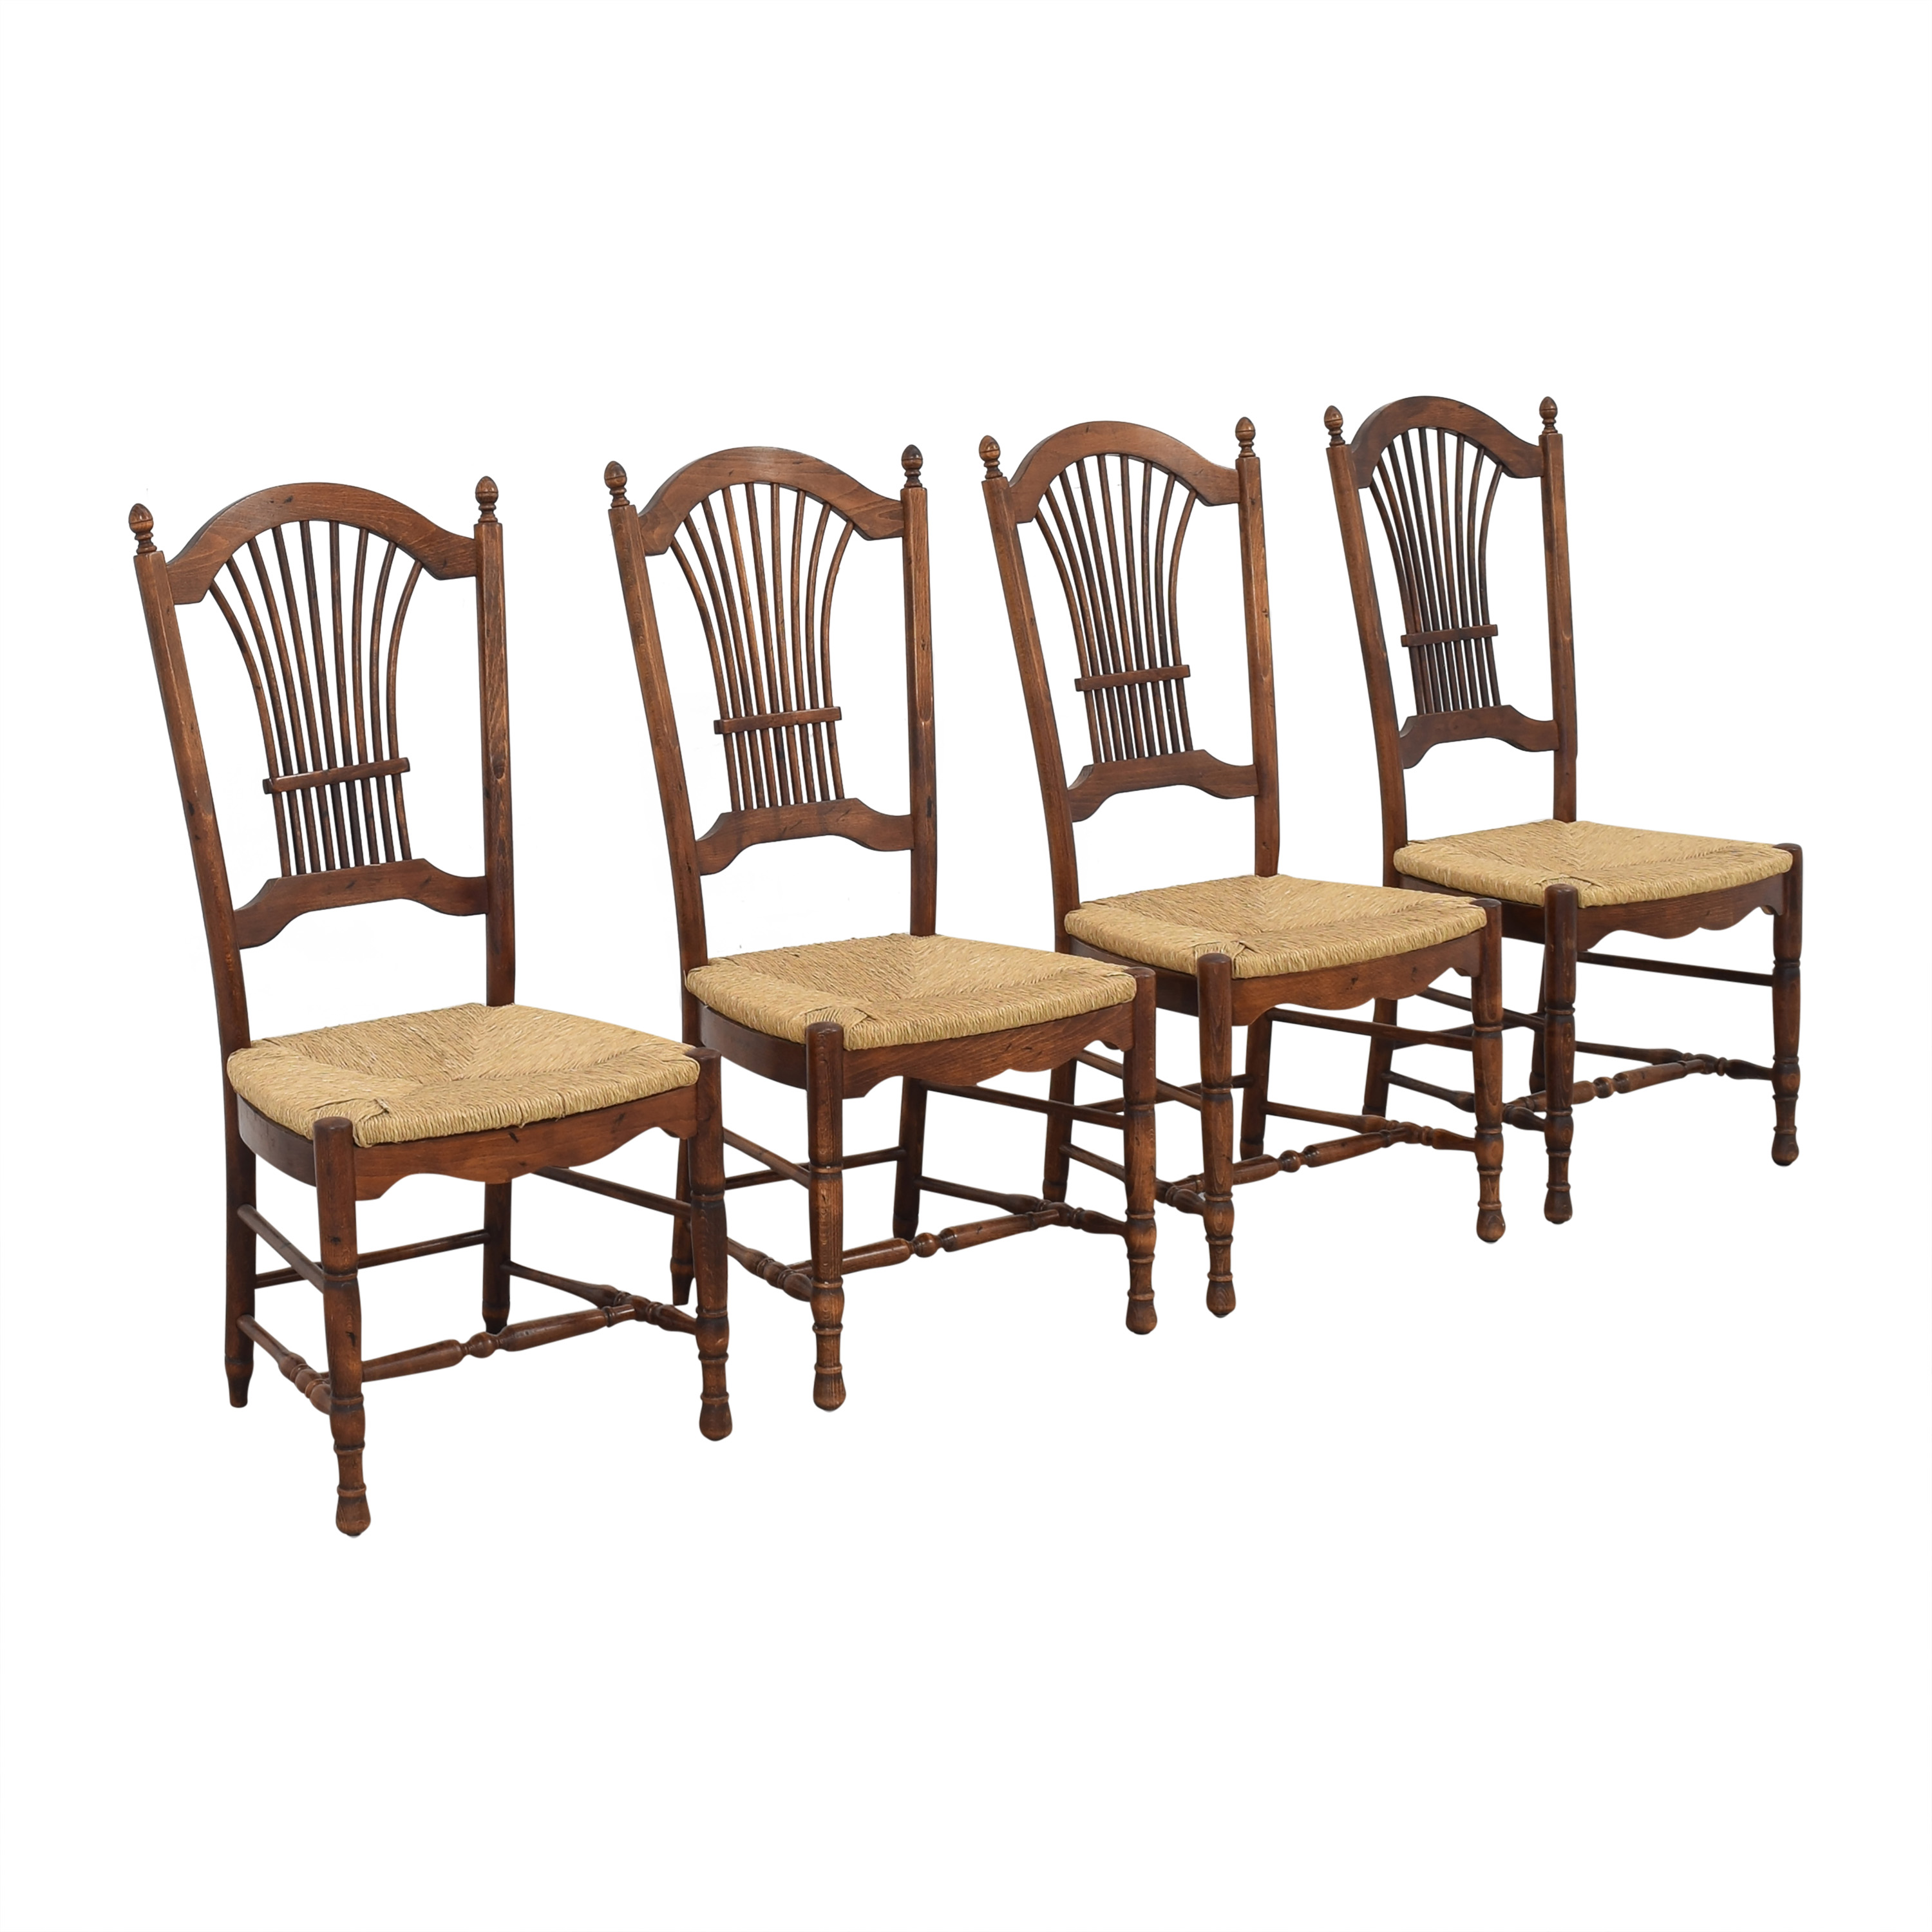 Cane Seat Dining Chairs for sale